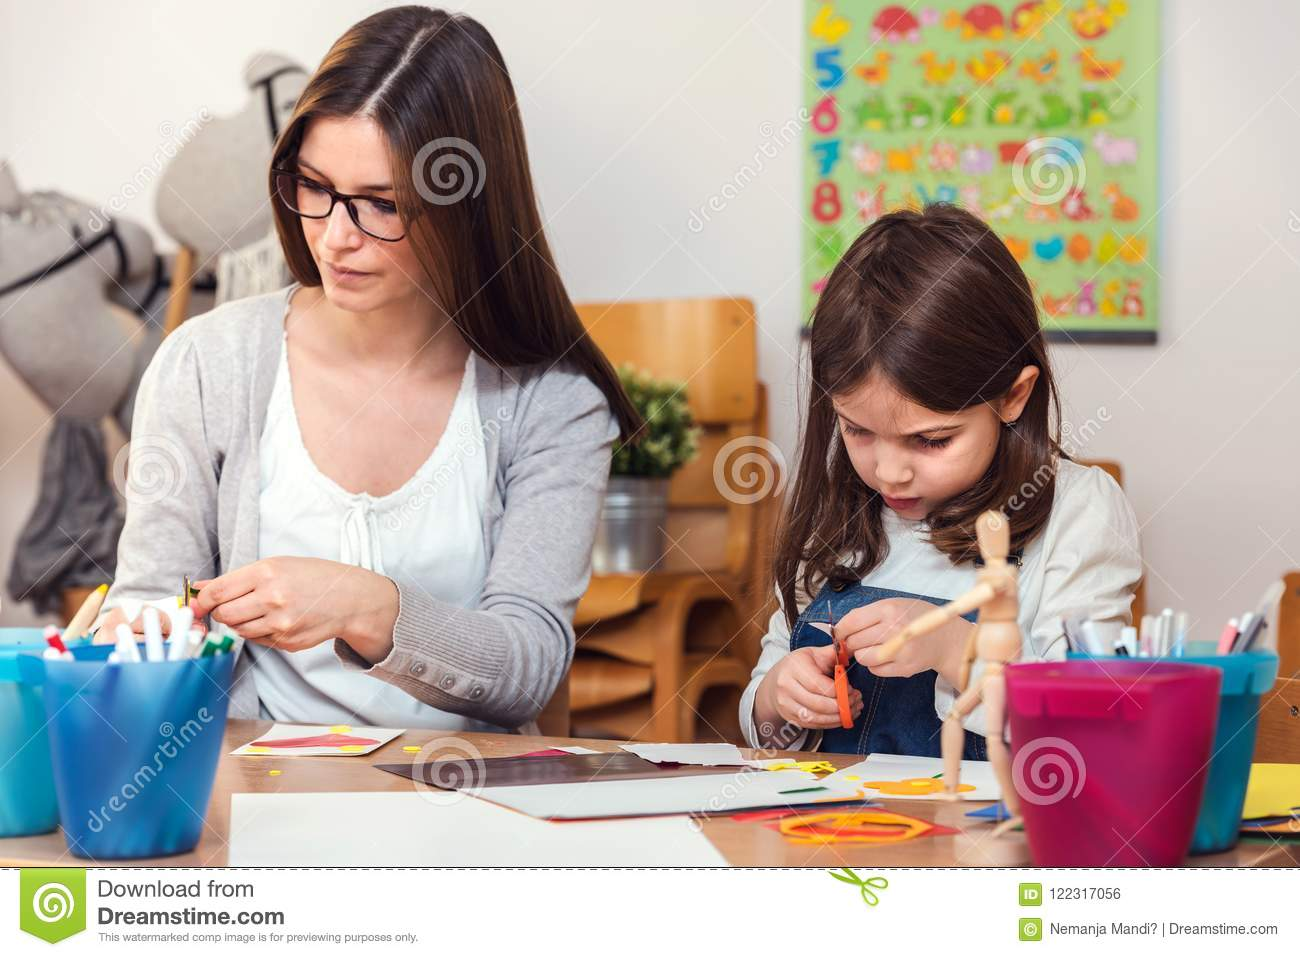 Preschool teacher with child at Kindergarten - Creative Art Class